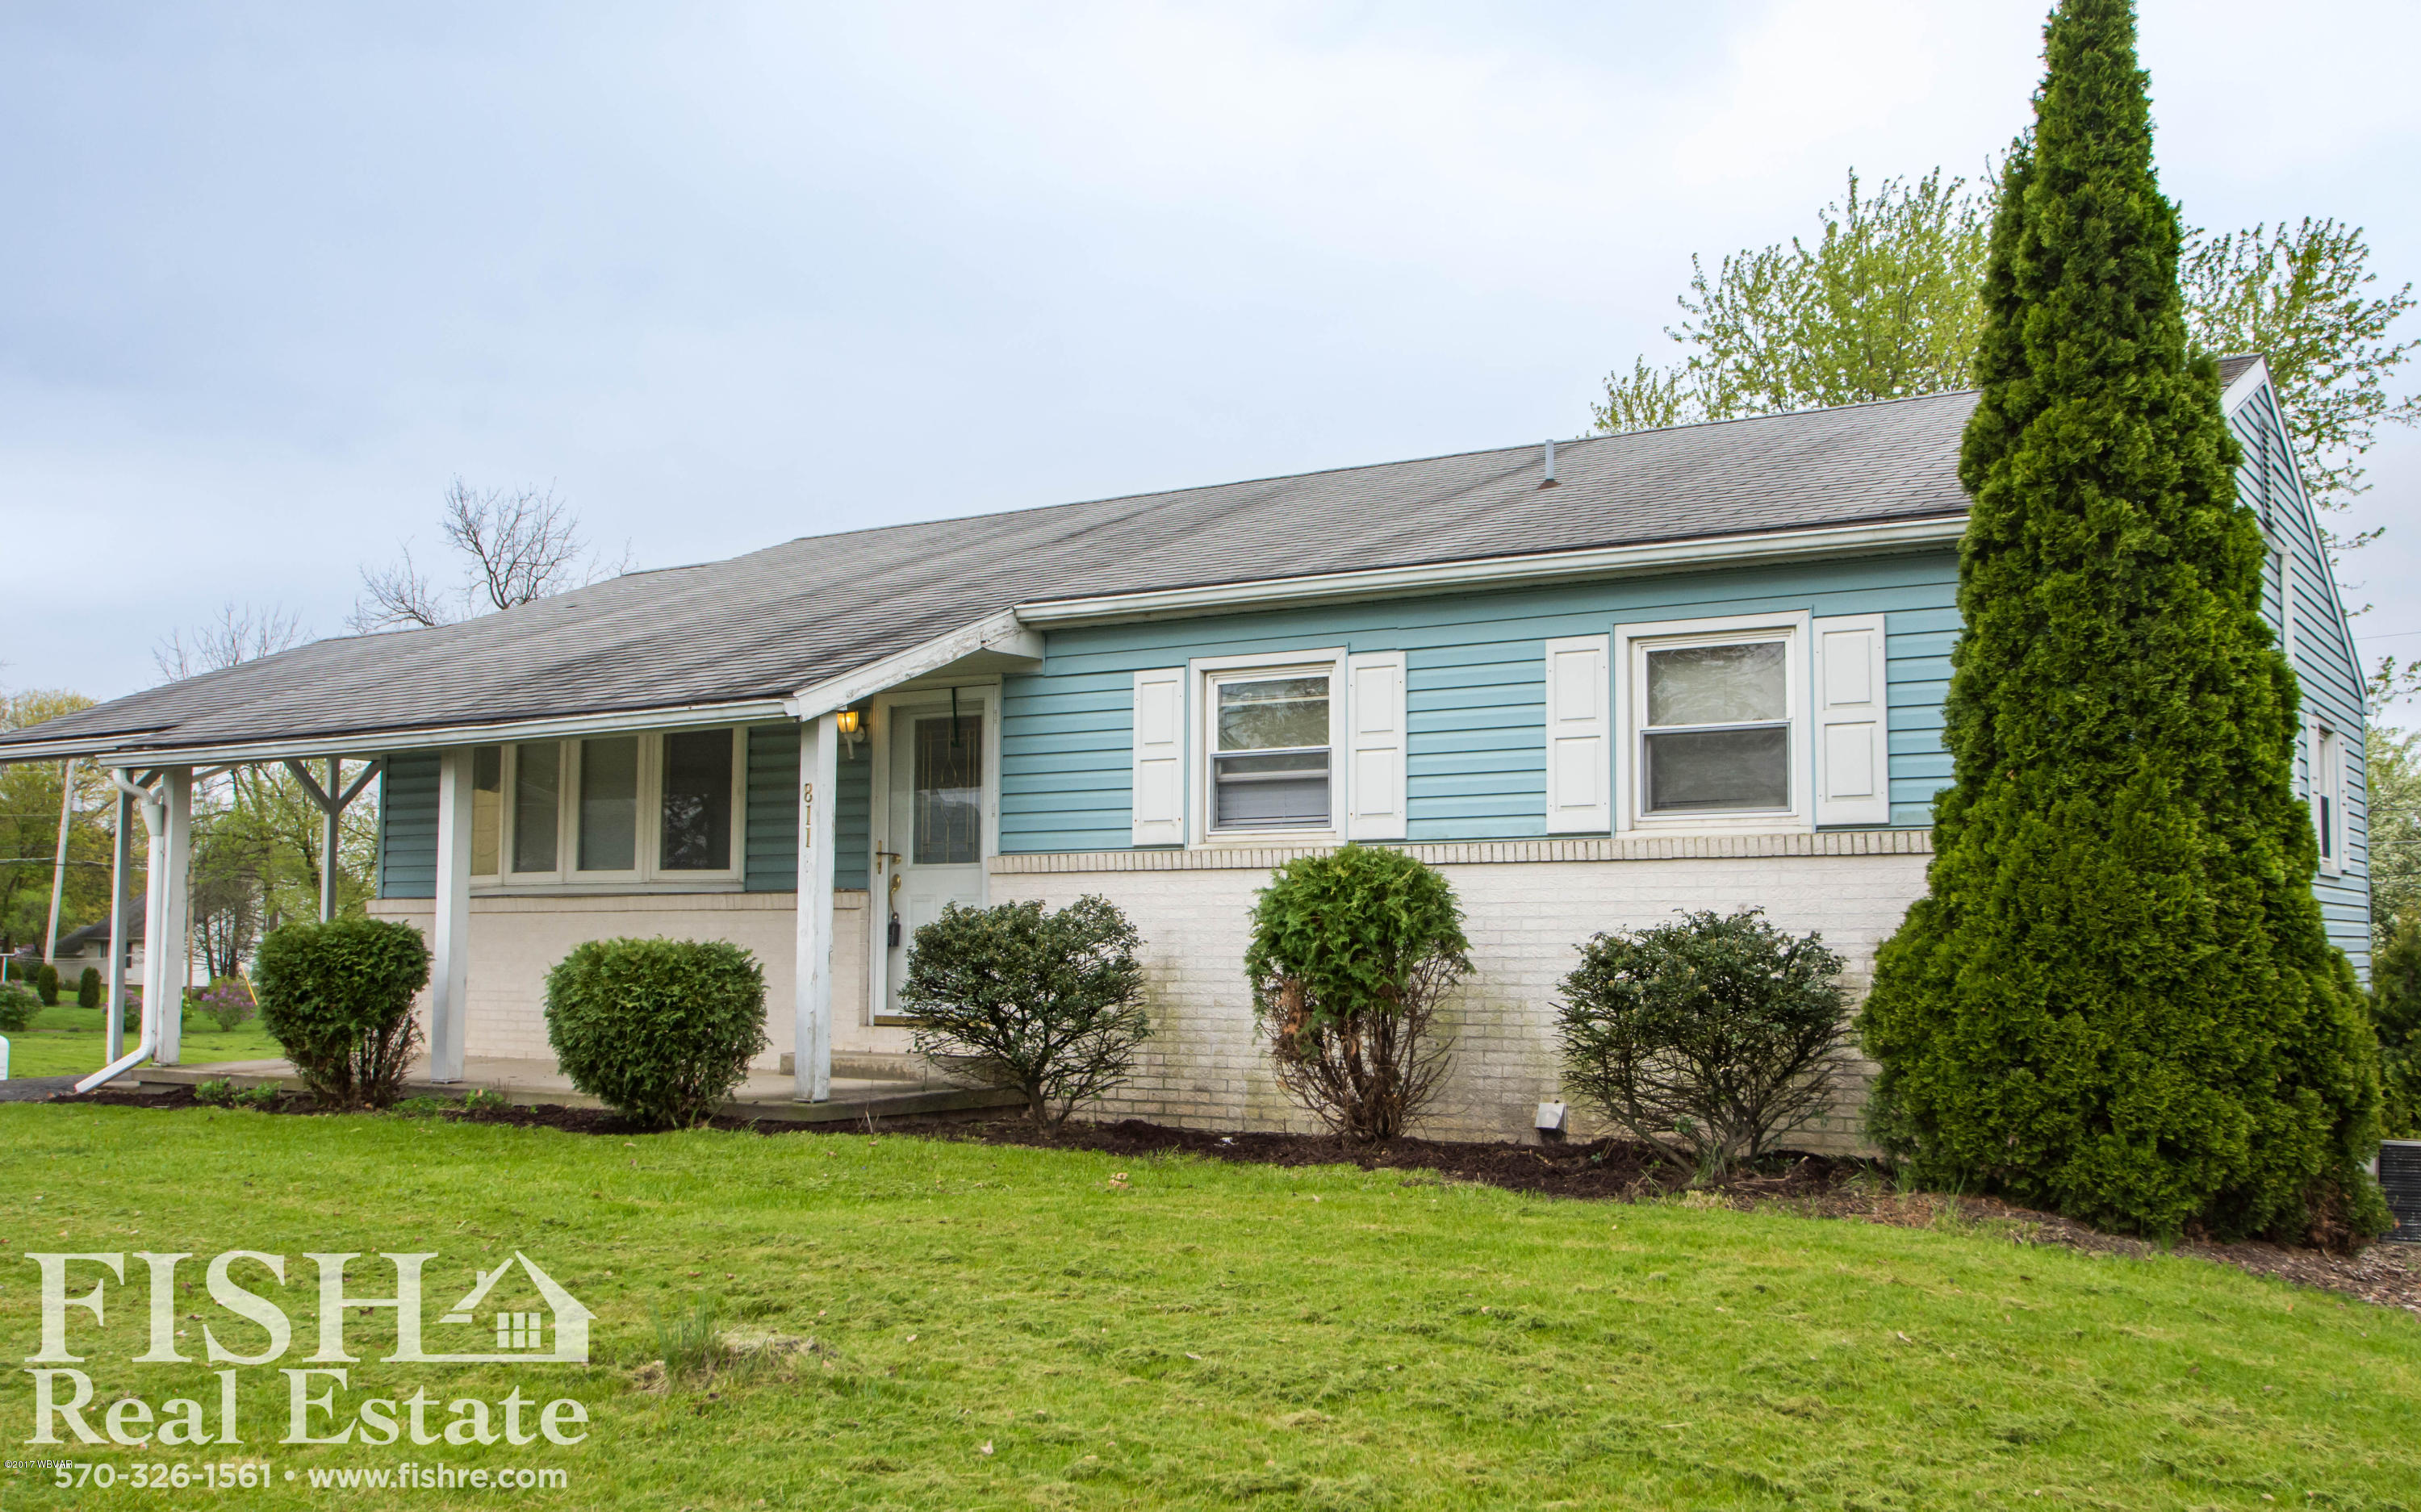 811 BUFFALO ROAD, Lewisburg, PA 17837, 3 Bedrooms Bedrooms, ,1 BathroomBathrooms,Residential,For sale,BUFFALO,WB-91725